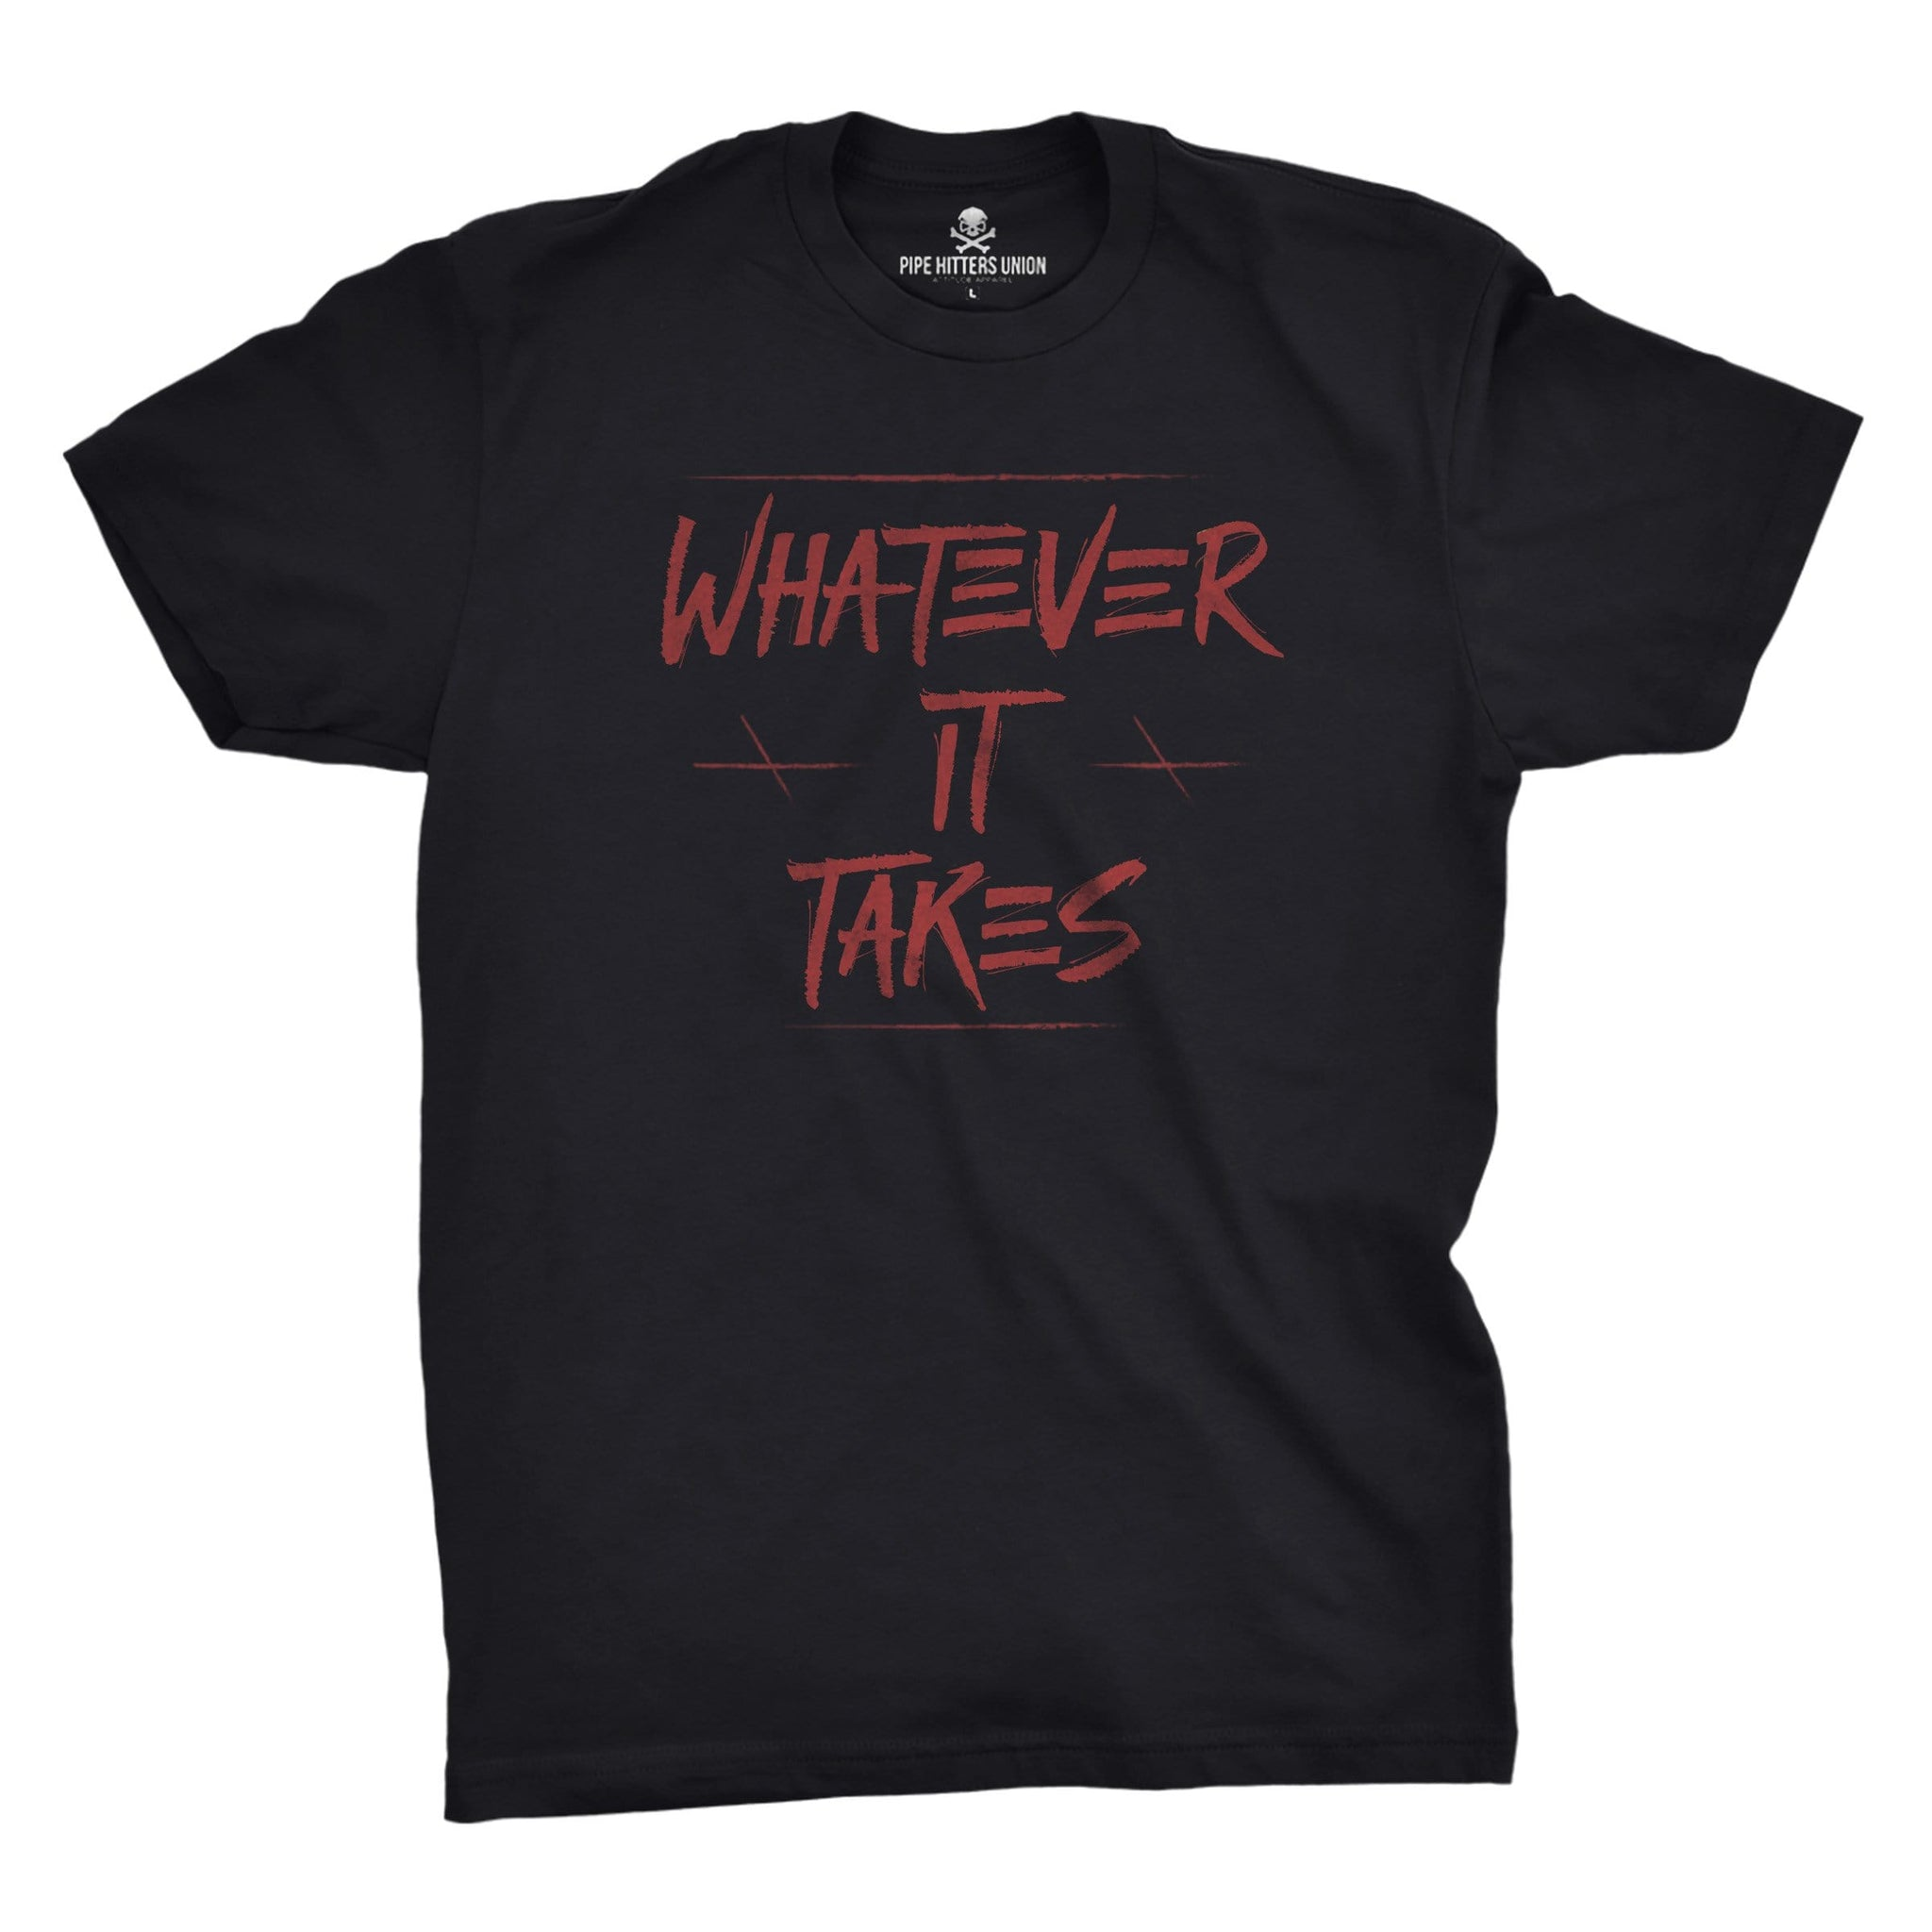 Whatever It Takes - Black/Red - T-Shirts - Pipe Hitters Union